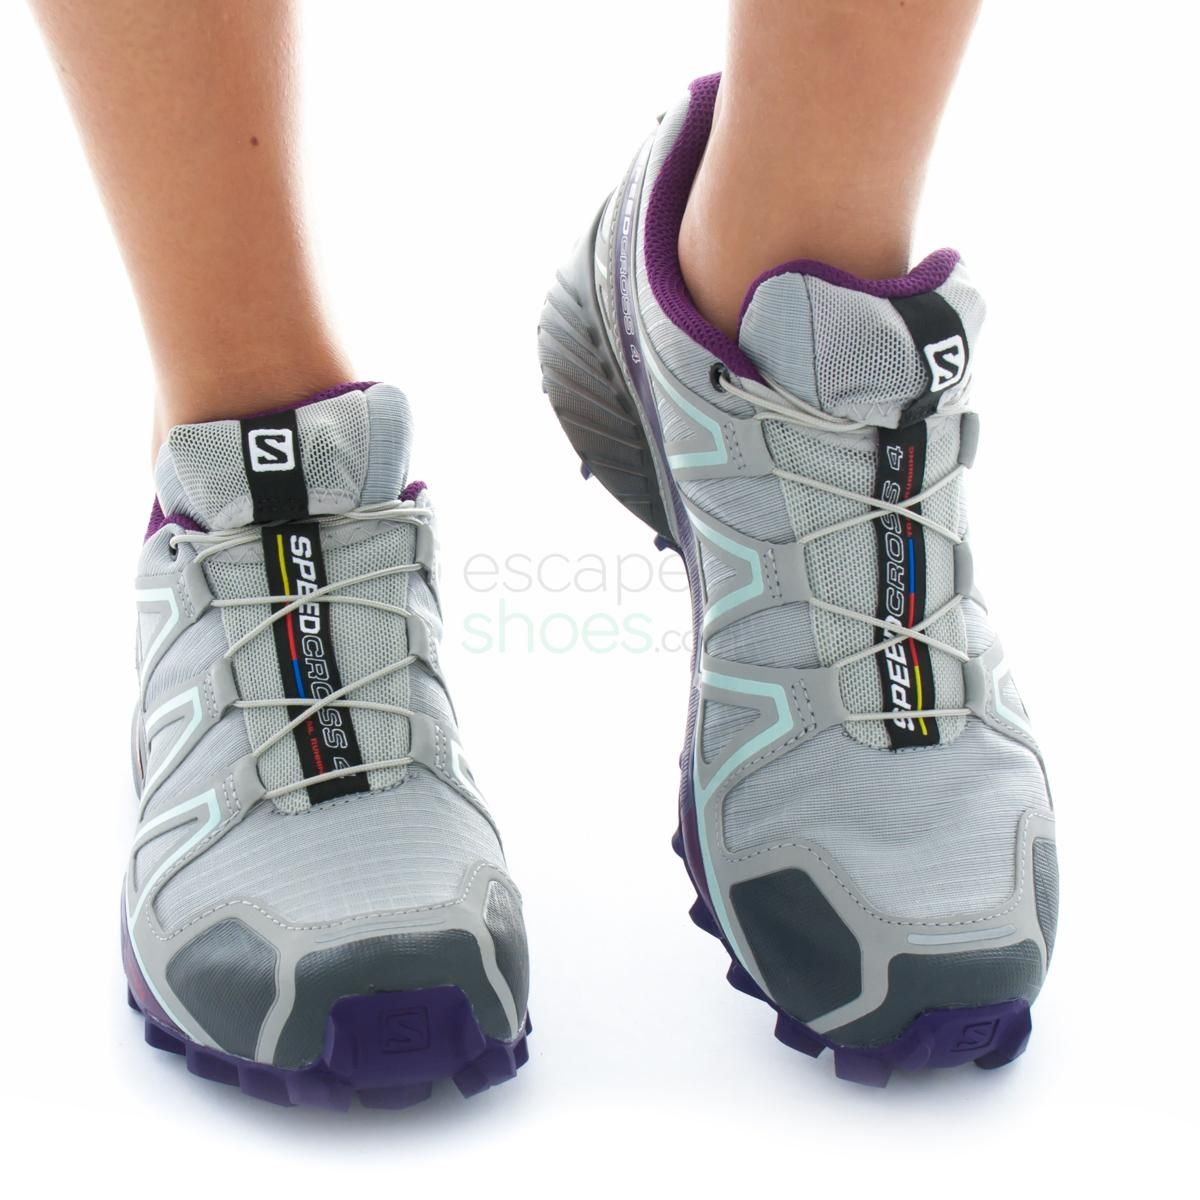 Salomon shoes, Trail running shoes